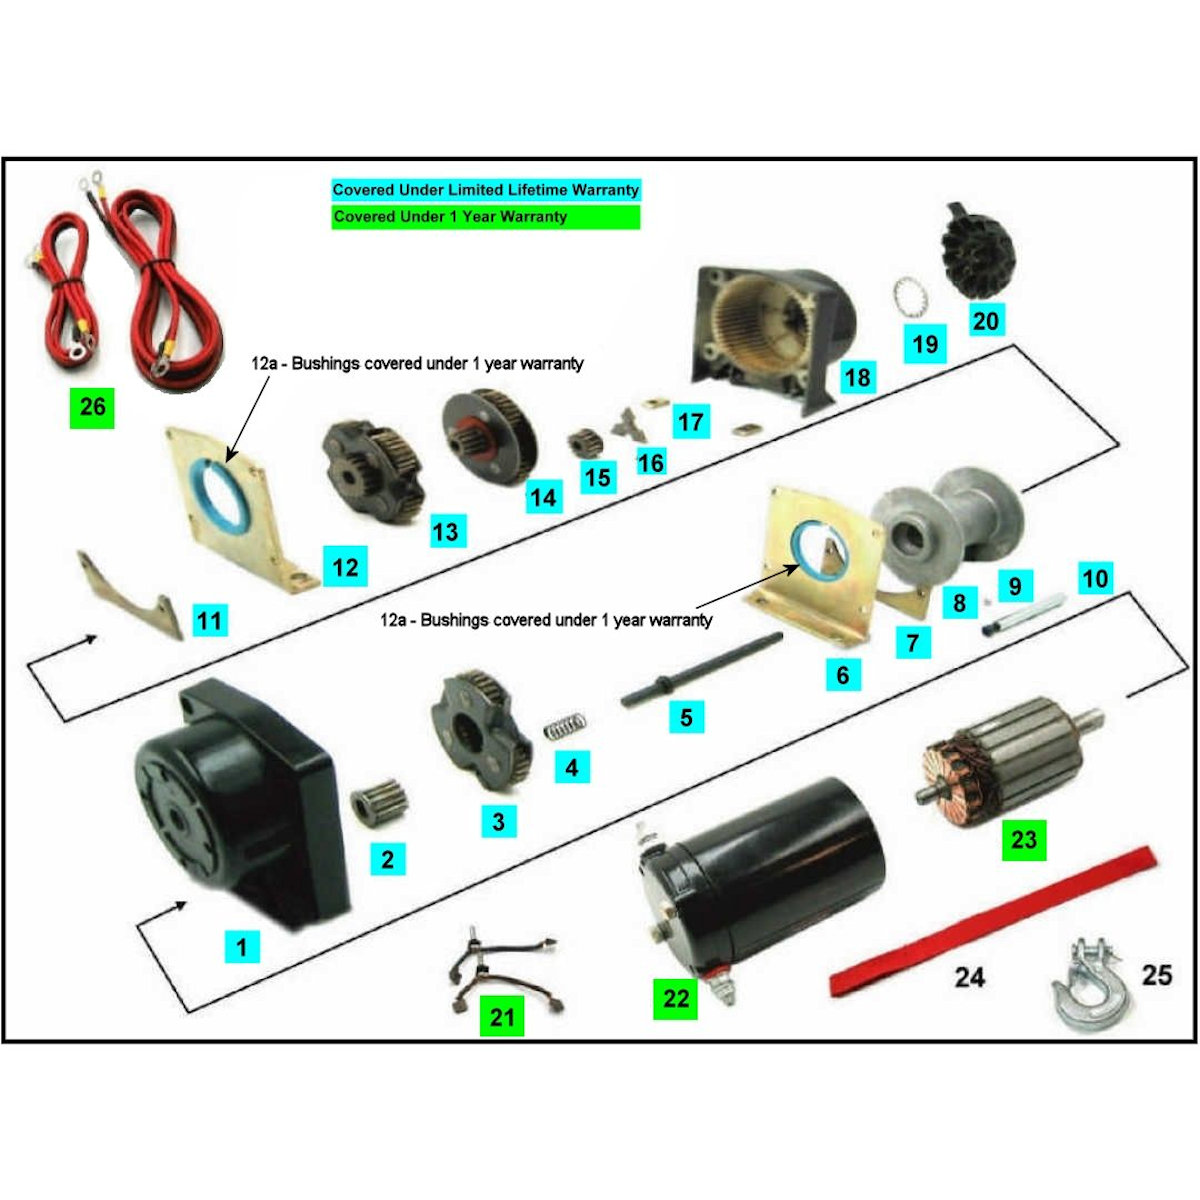 Atv Winch Diagram Wiring Diagrams Best Quadboss Solenoid Viper Winches Replacement Parts Warn Rt25